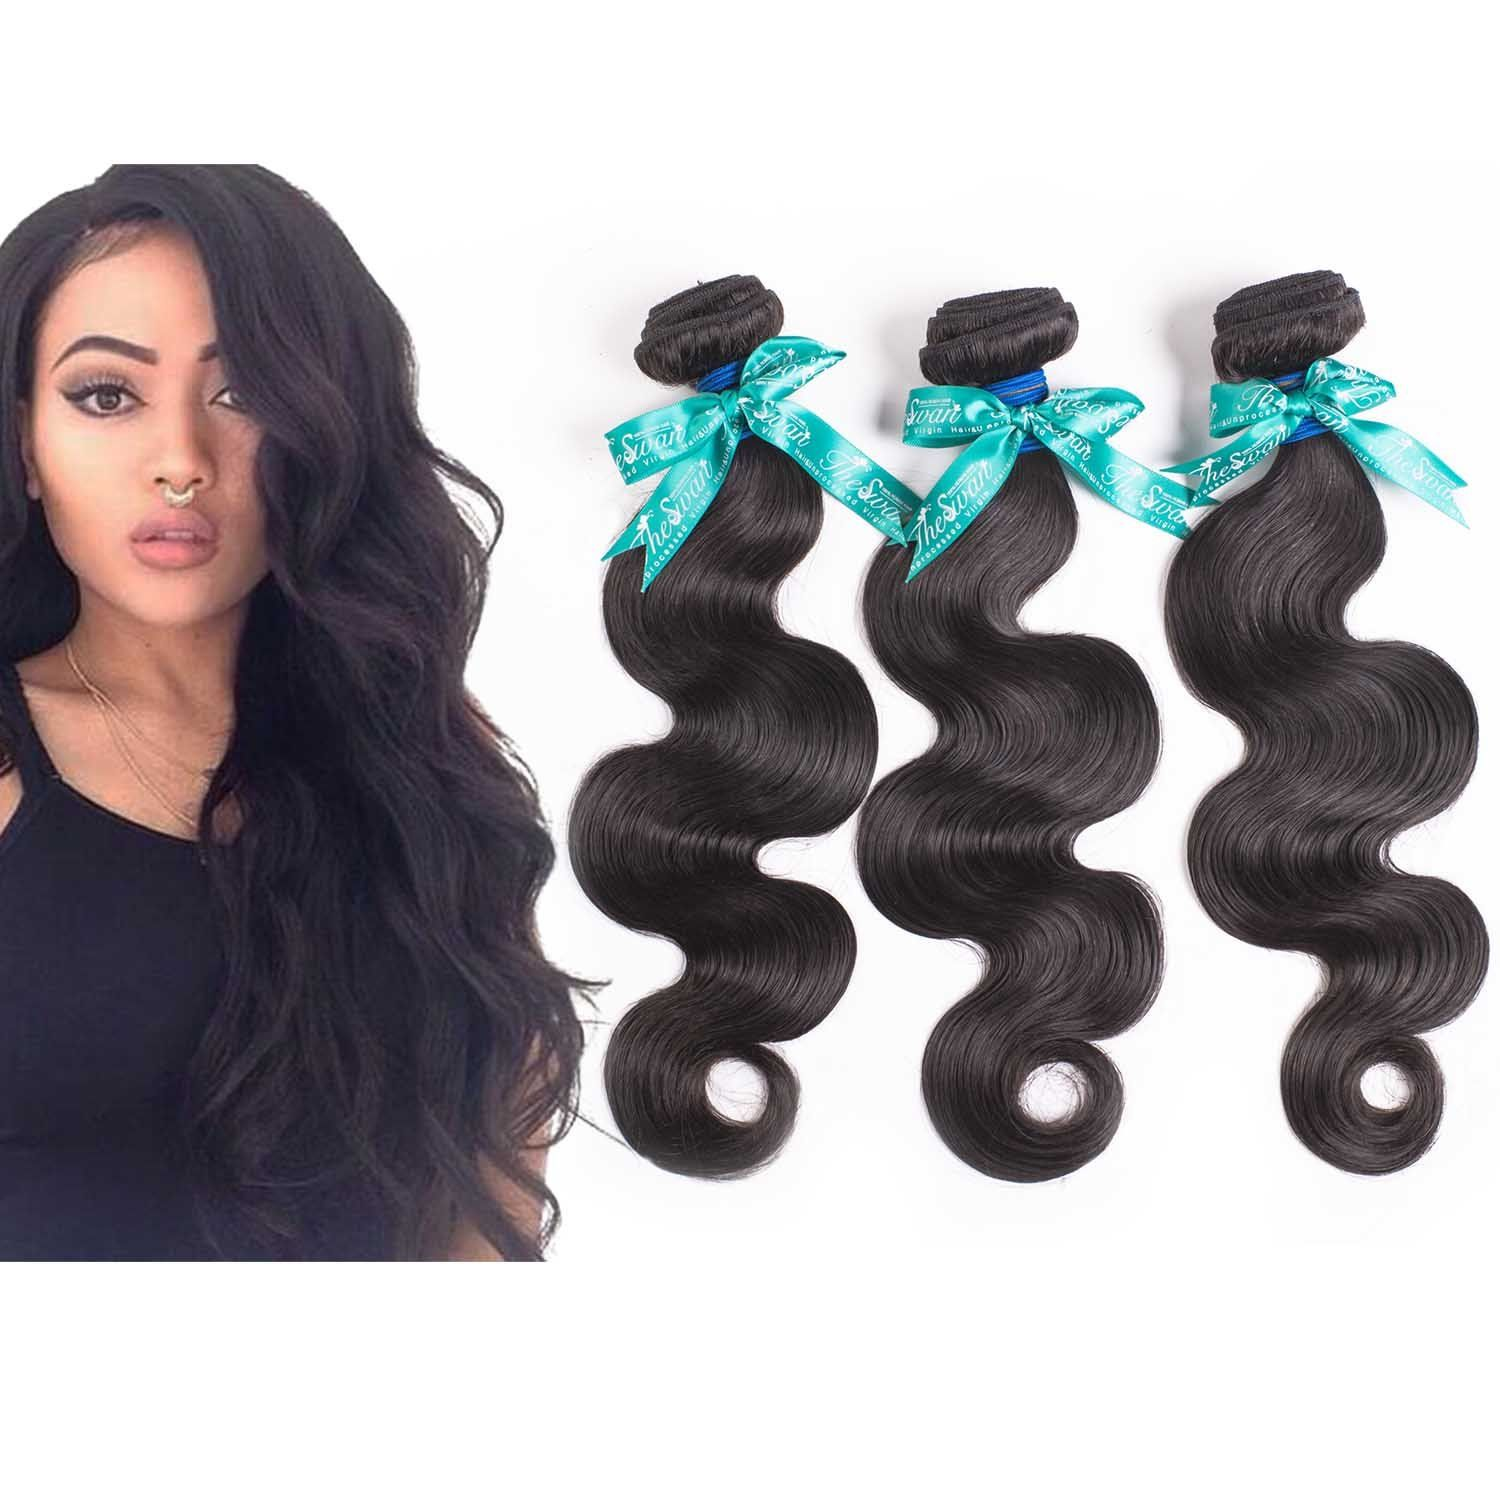 Swan 7a Grade Brazilian Virgin Hair Body Wave Human Hair 3bundles